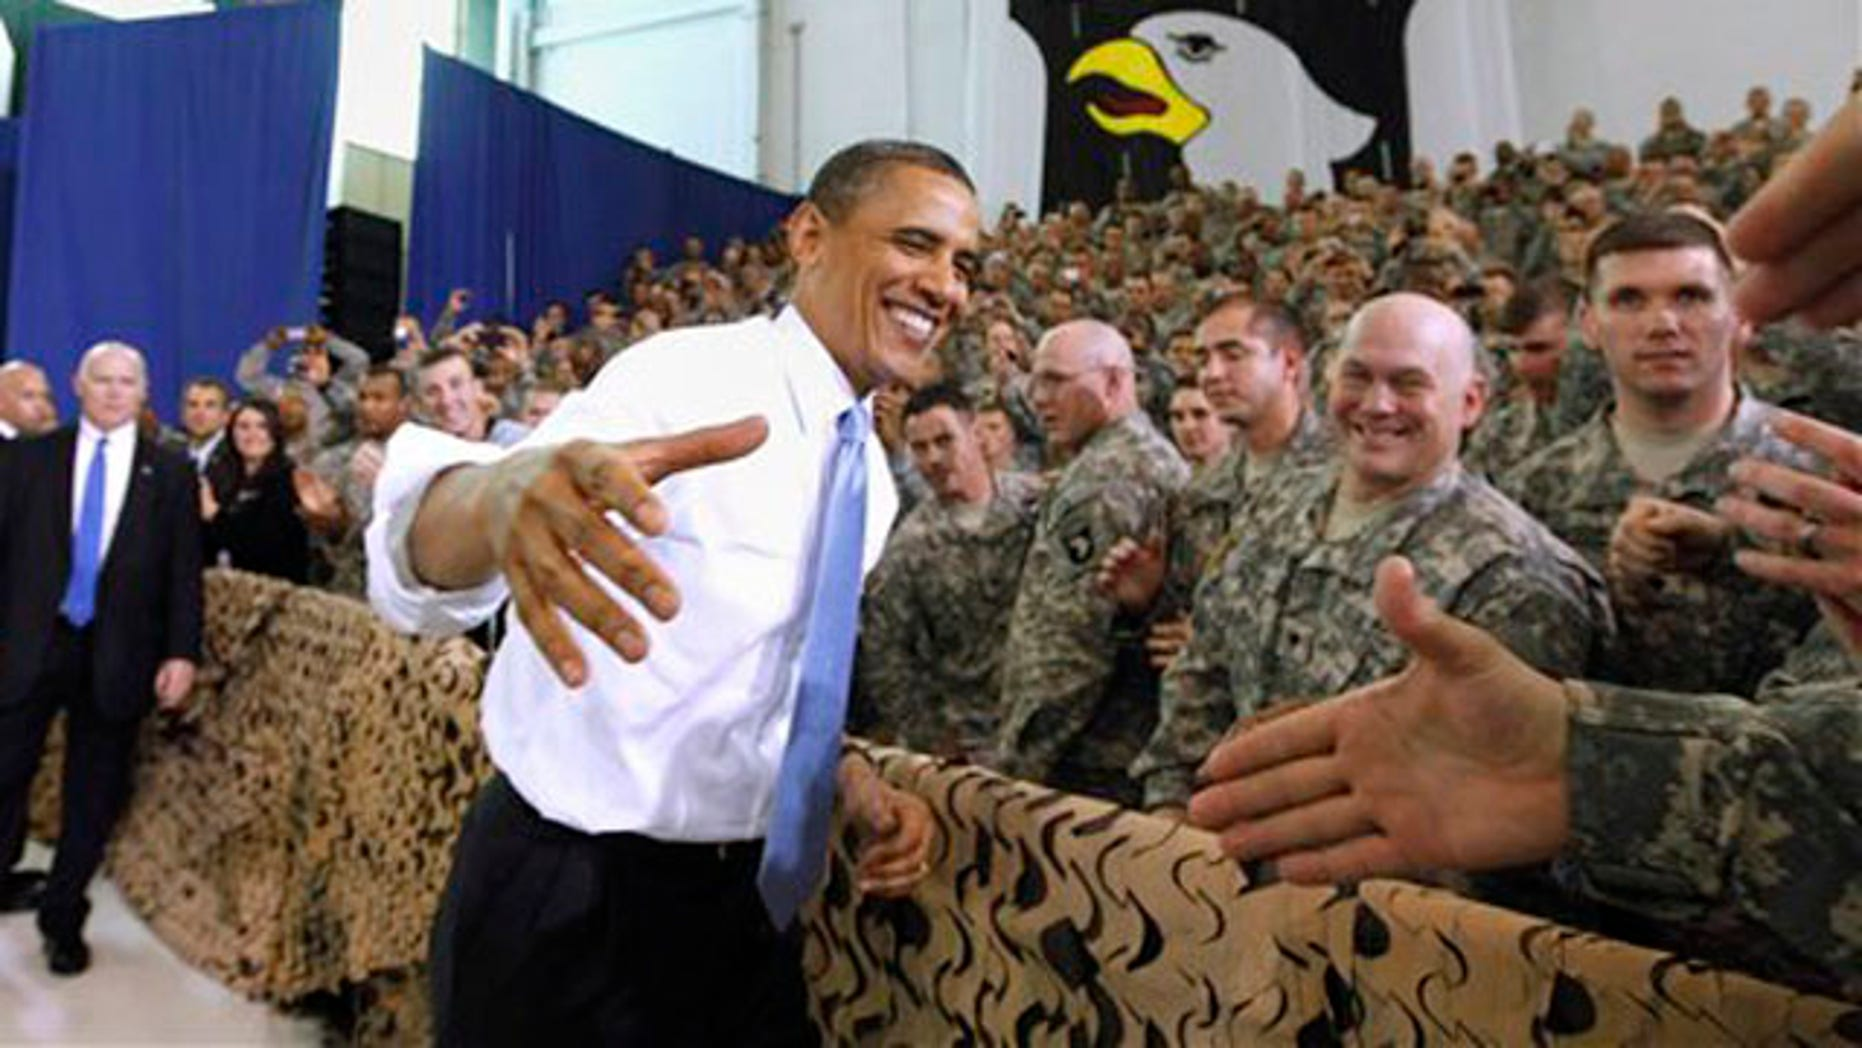 President Obama greets military personnel before addressing the troops.